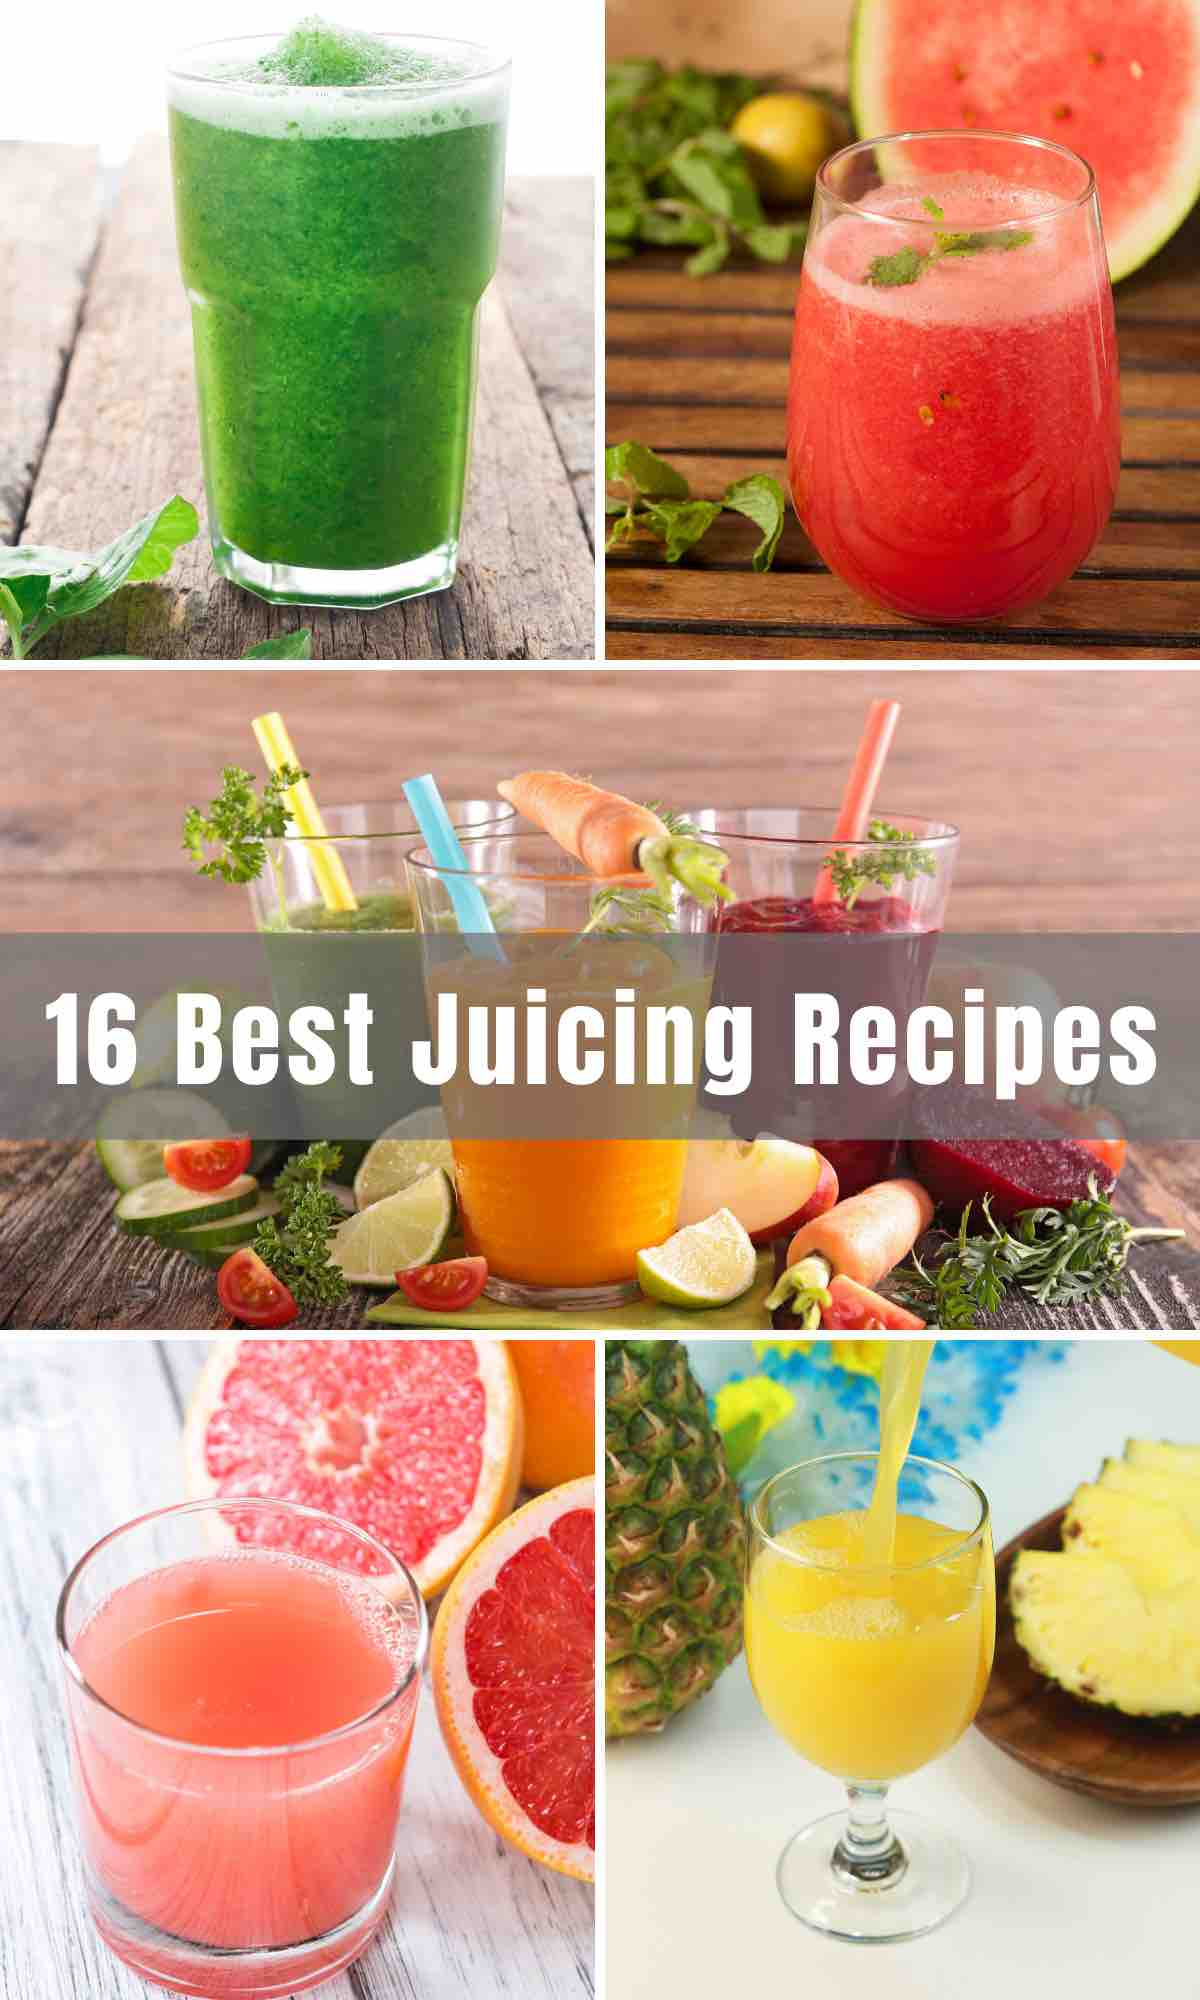 Check out these 16 Best Juicing Recipes and learn how to make your own healthy and refreshing juice at home. From green juice recipes to vegetable juice, fruit juice, to detoxing ones, we'll give you enough choices that your whole family will be satisfied with.